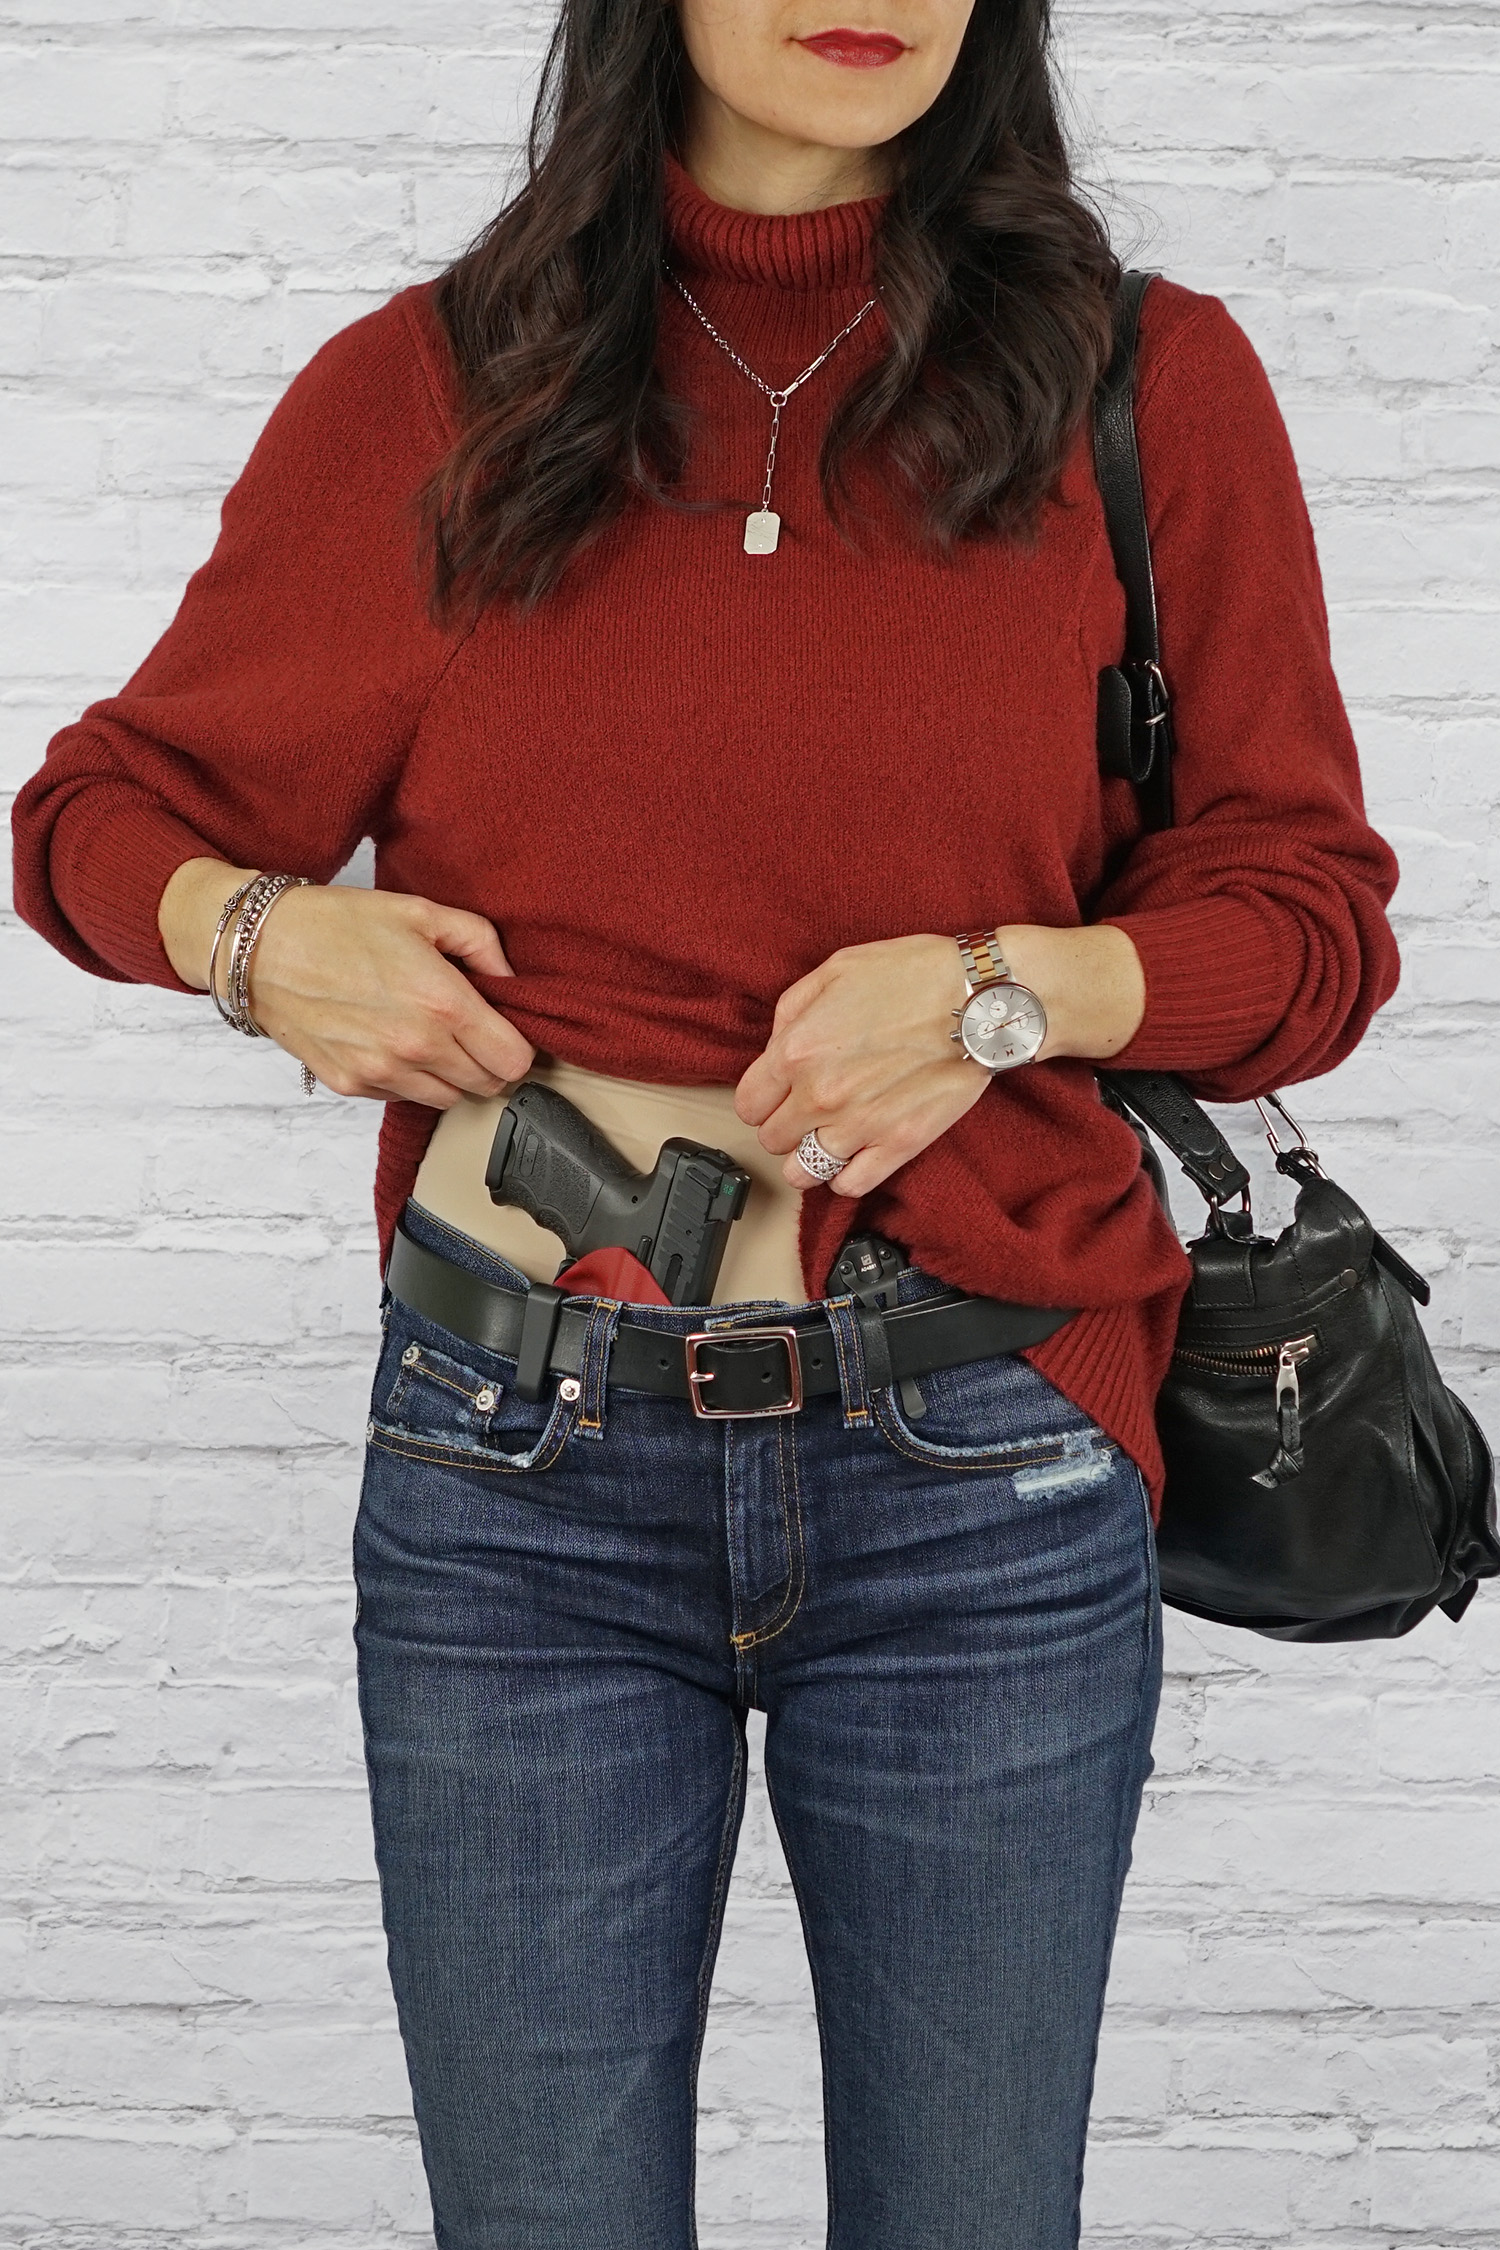 Concealed Carry for Women, Women's Concealed Carry Tips, Heckler & Koch VP9SK, Blacksmith Tactical Holster